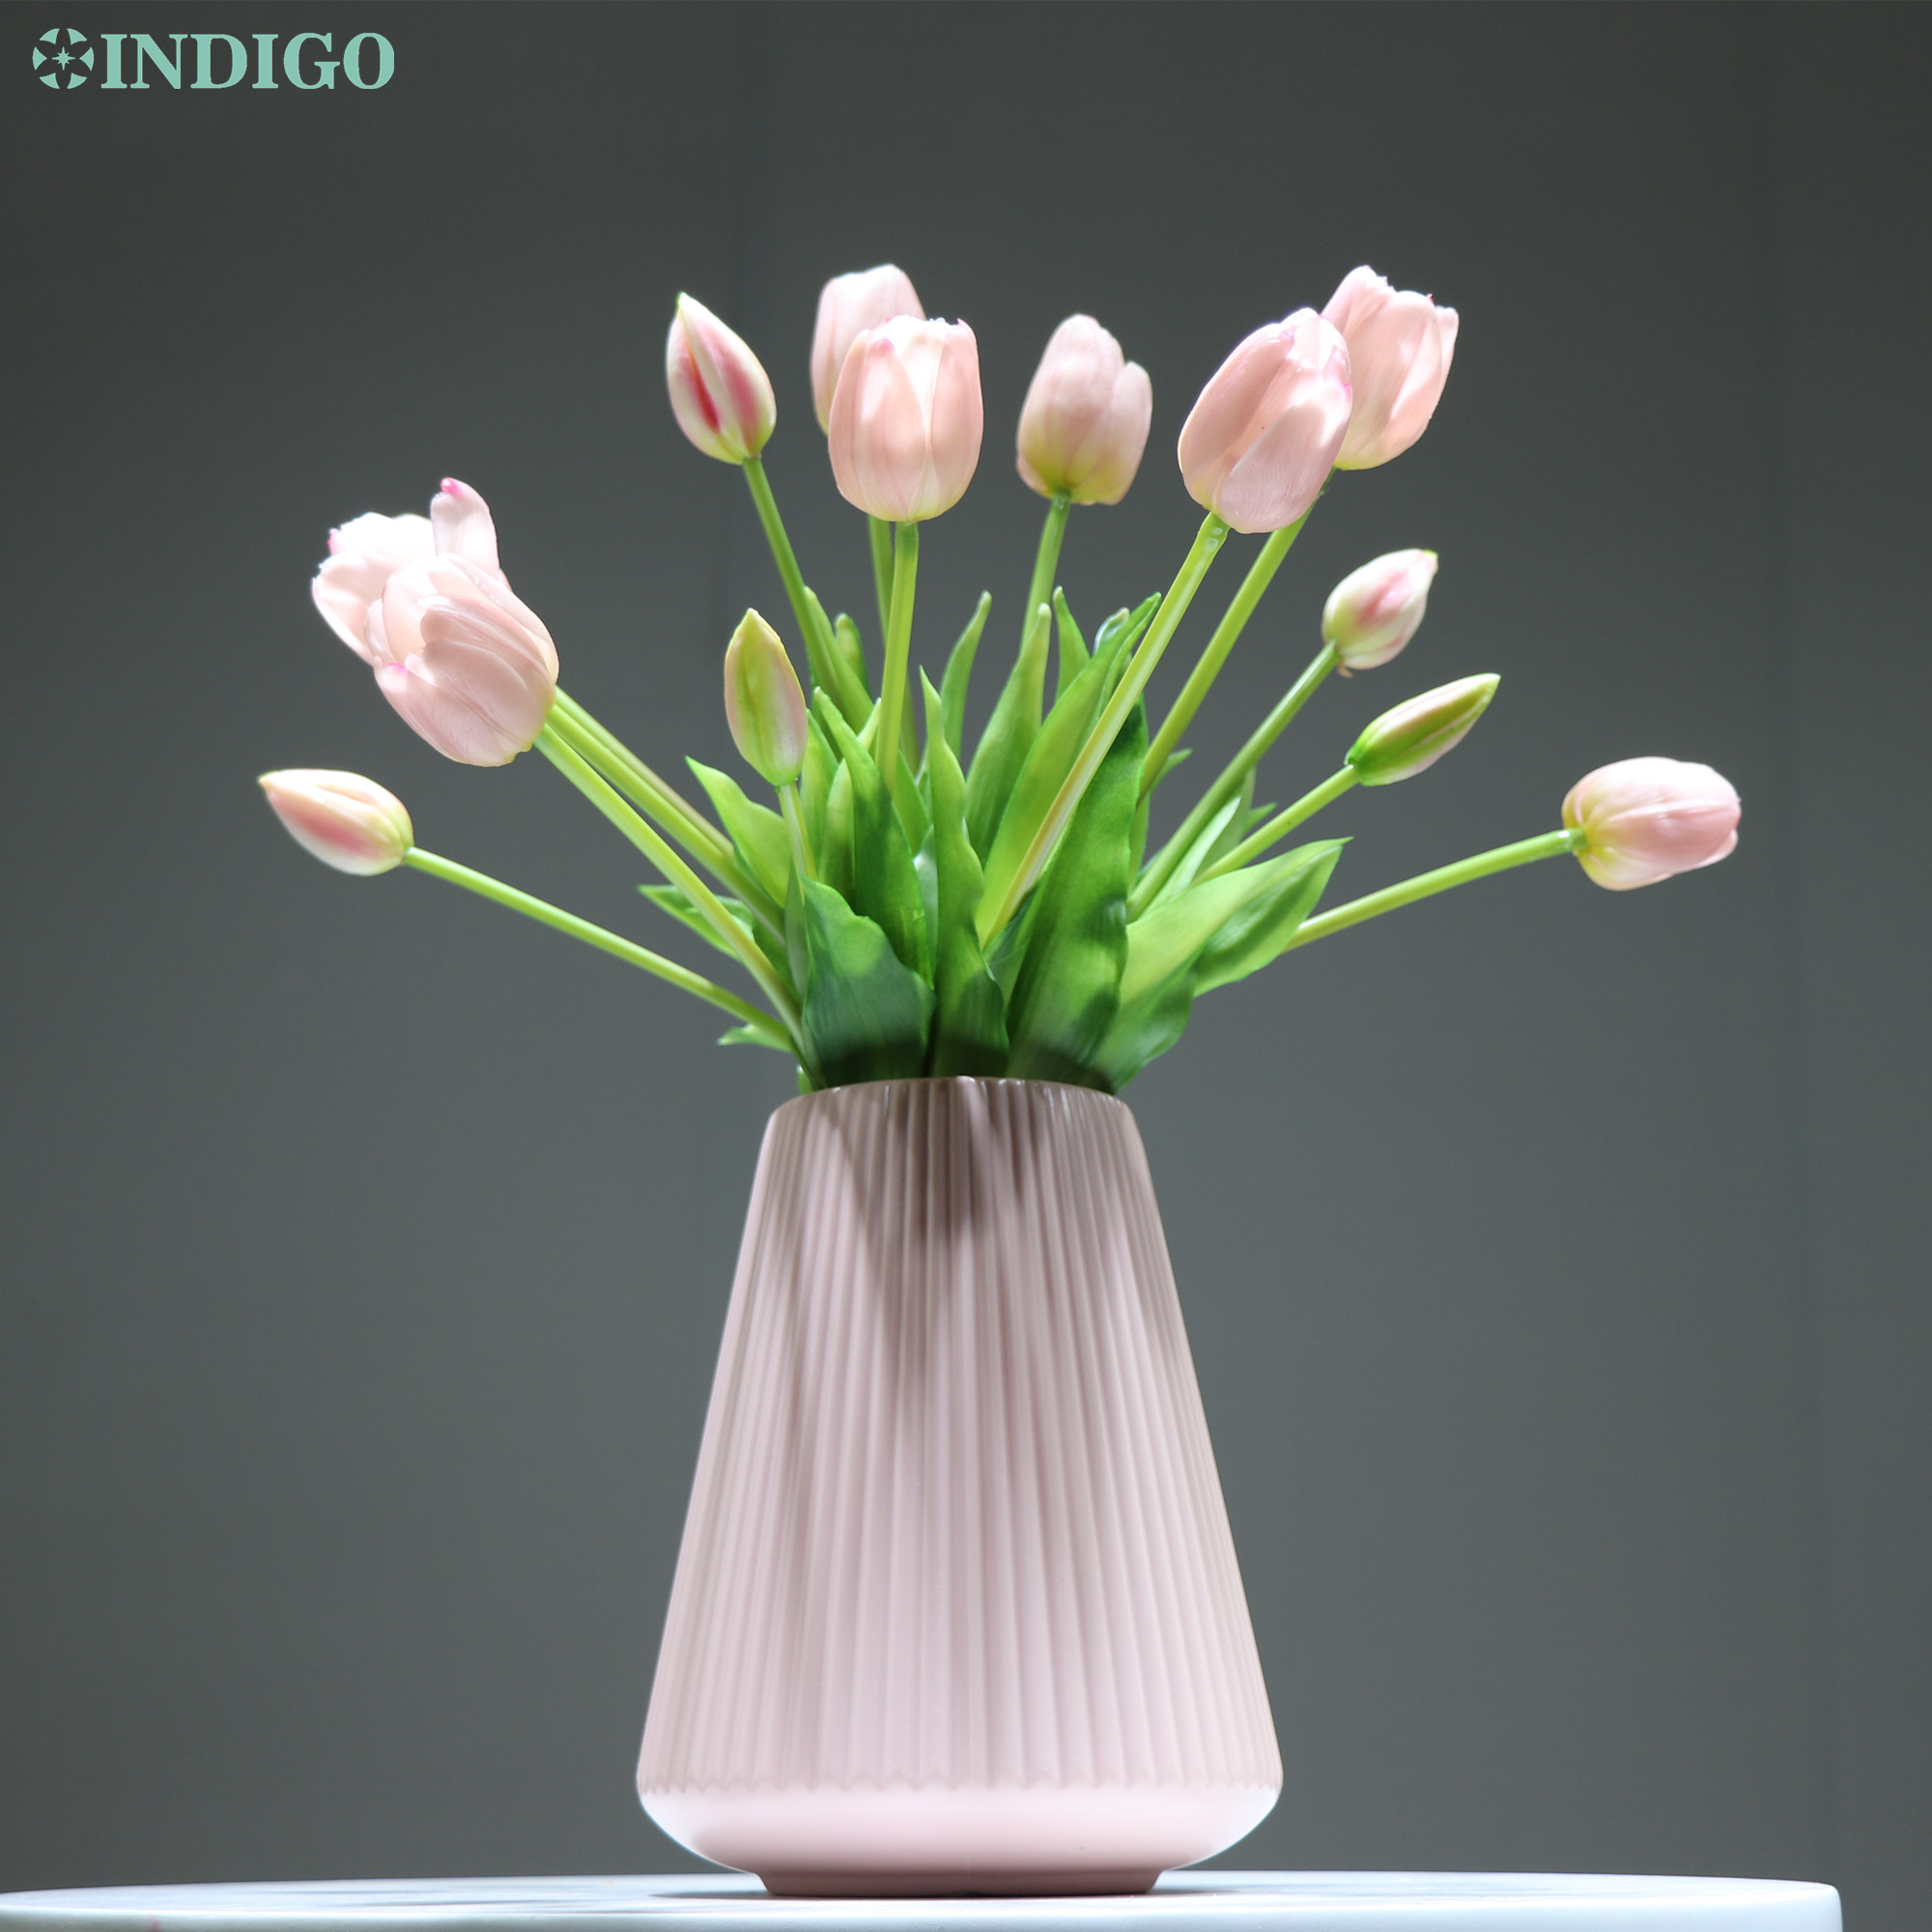 INDIGO-(3 flowers+2 bud)Bouquet Real Touch Silicone Tulip High Quality Yellow Tulip Home Artificial Flower Wedding DropShipping-4